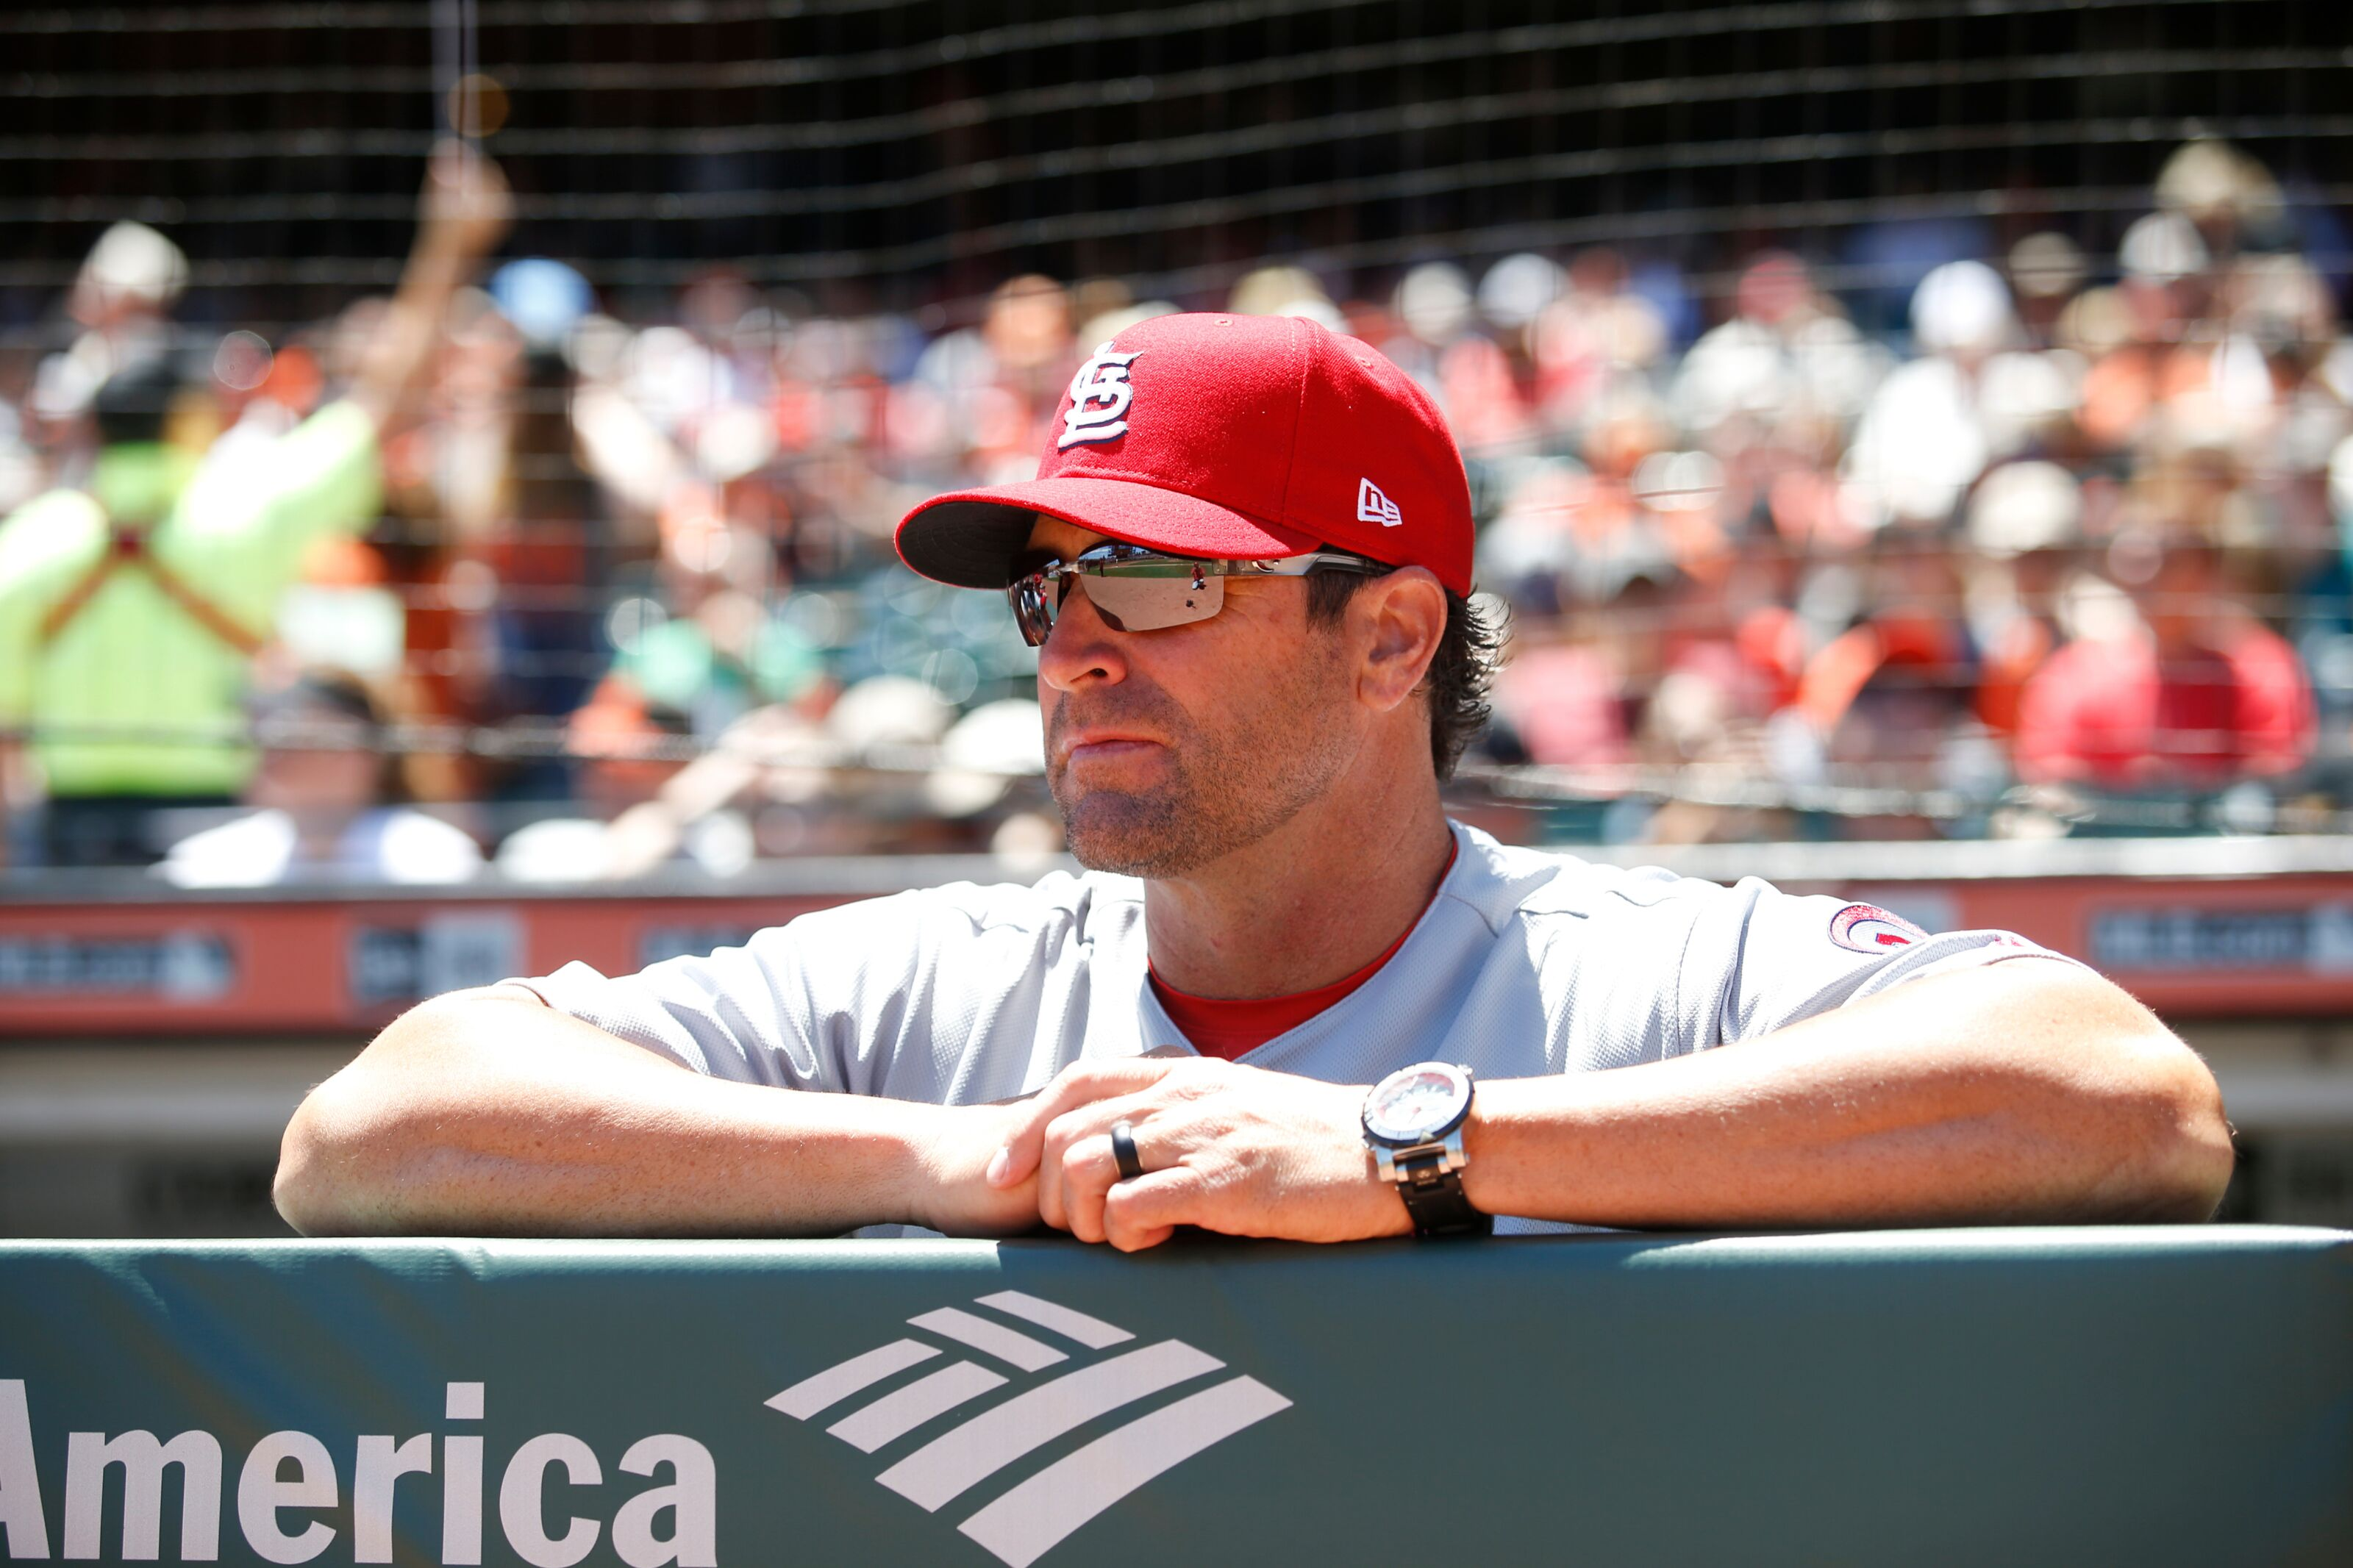 Kansas City Royals: Mike Matheny is not the answer